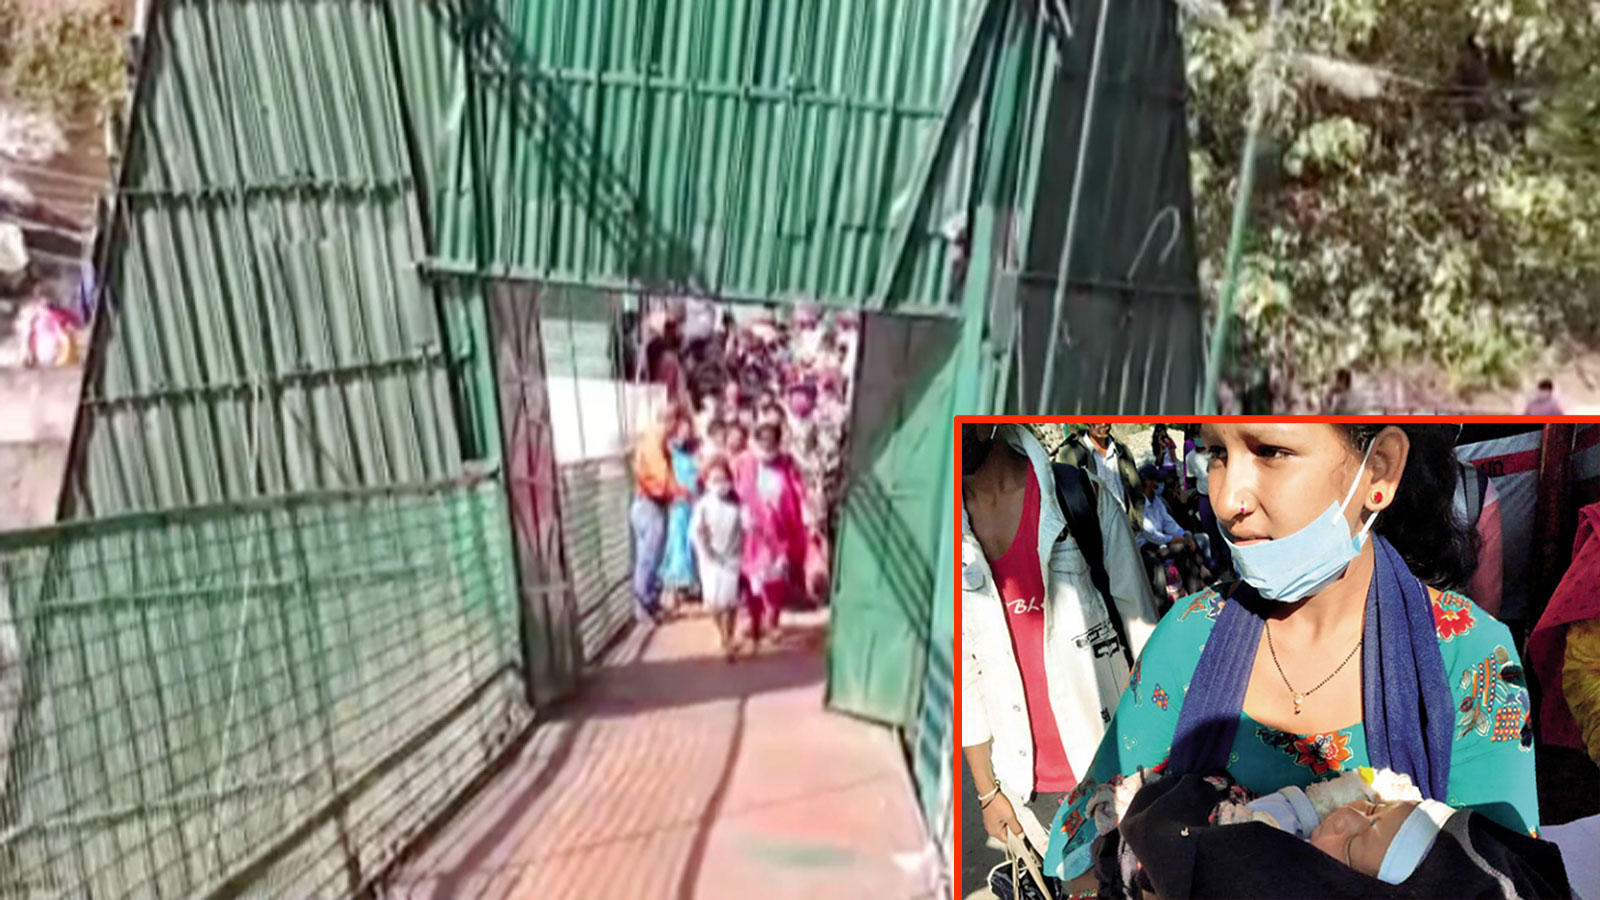 suspension-bridge-at-india-nepal-border-opened-for-sick-nepalese-baby